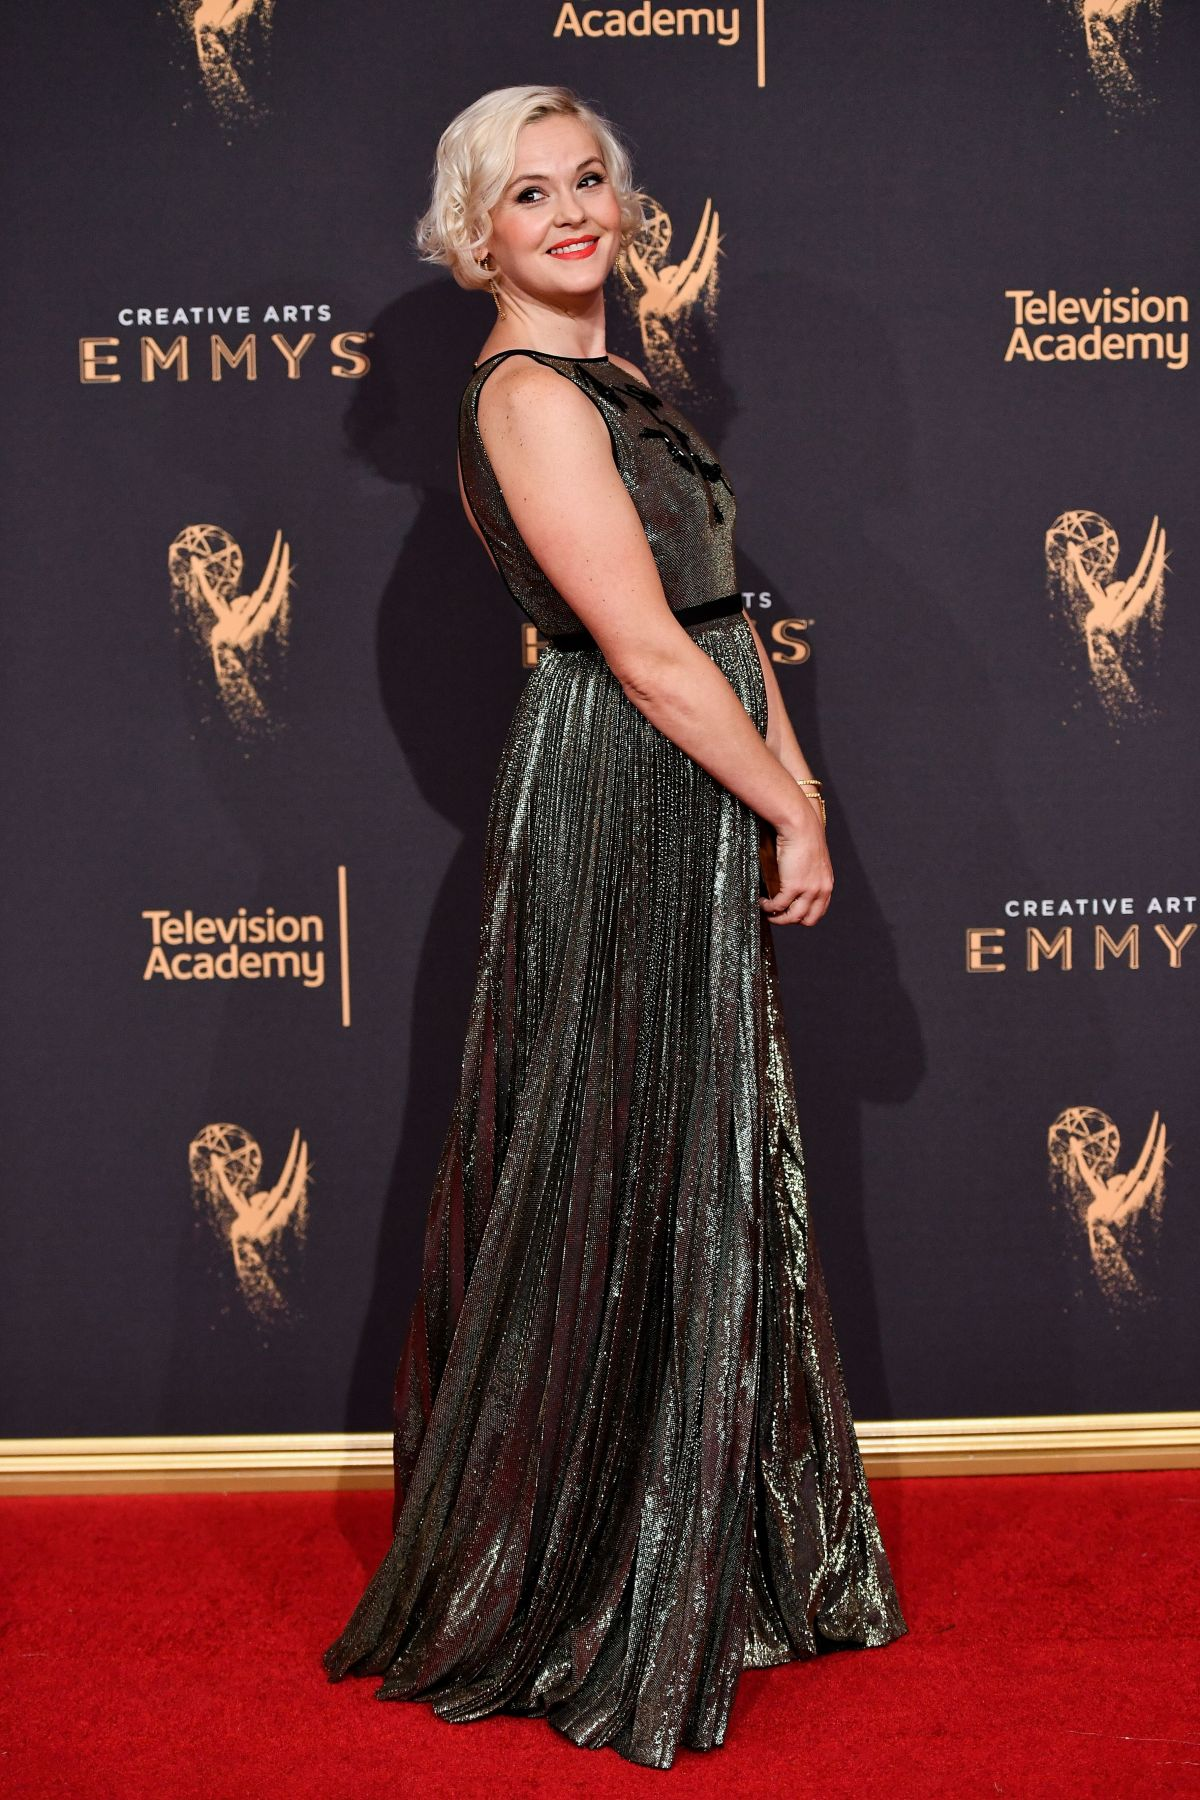 images Kimmy gatewood creative arts emmy awards in los angeles